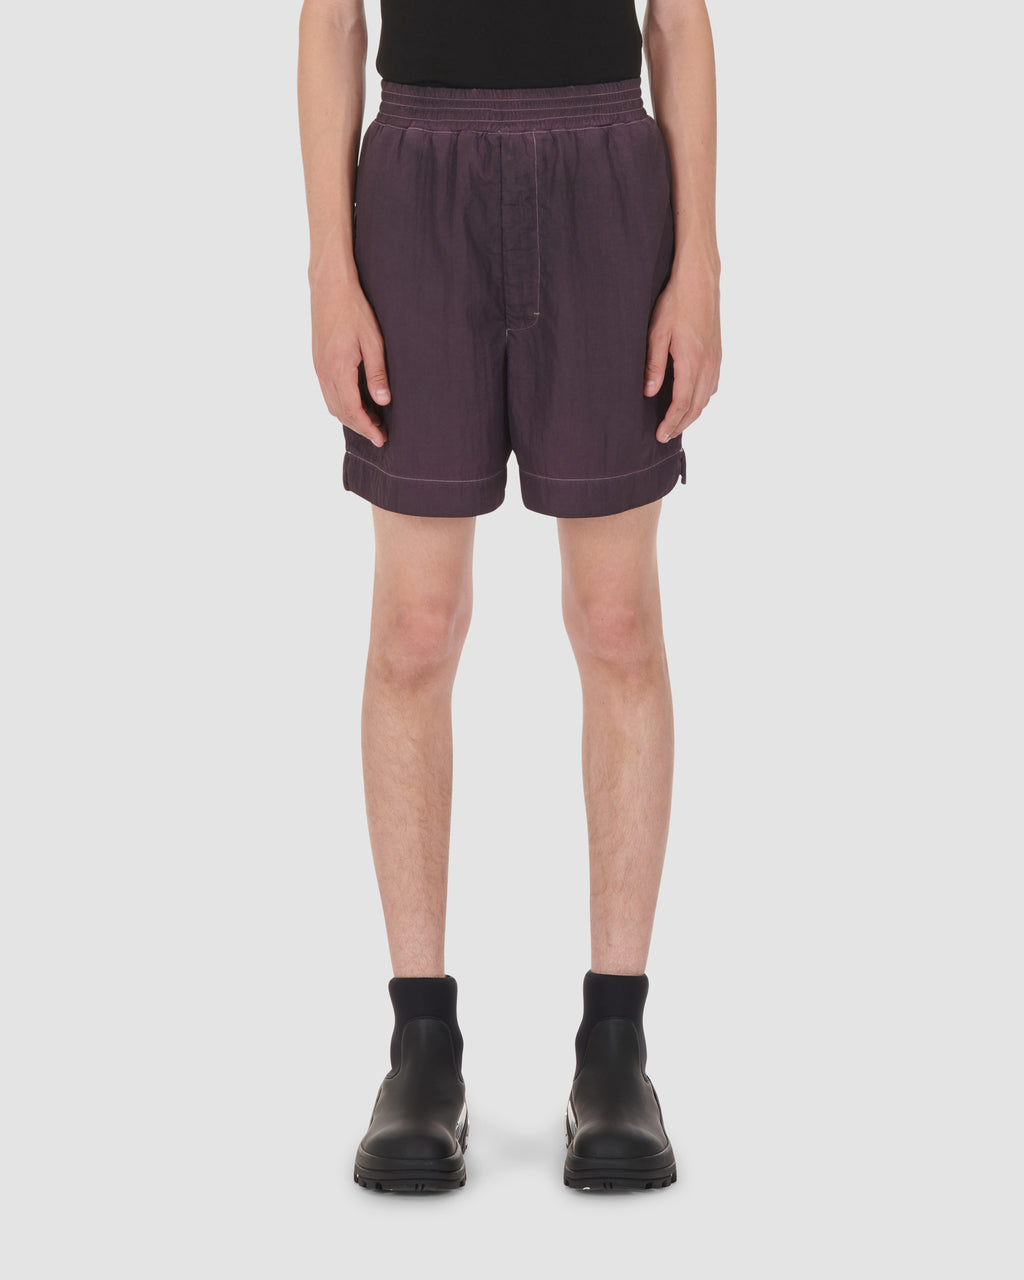 1017 ALYX 9SM | GARMENT DYED SWIM TRUNK PRE-ORDER | Swimwear | BEACHWEAR, Google Shopping, Man, MEN, PURPLE, S20, SS20